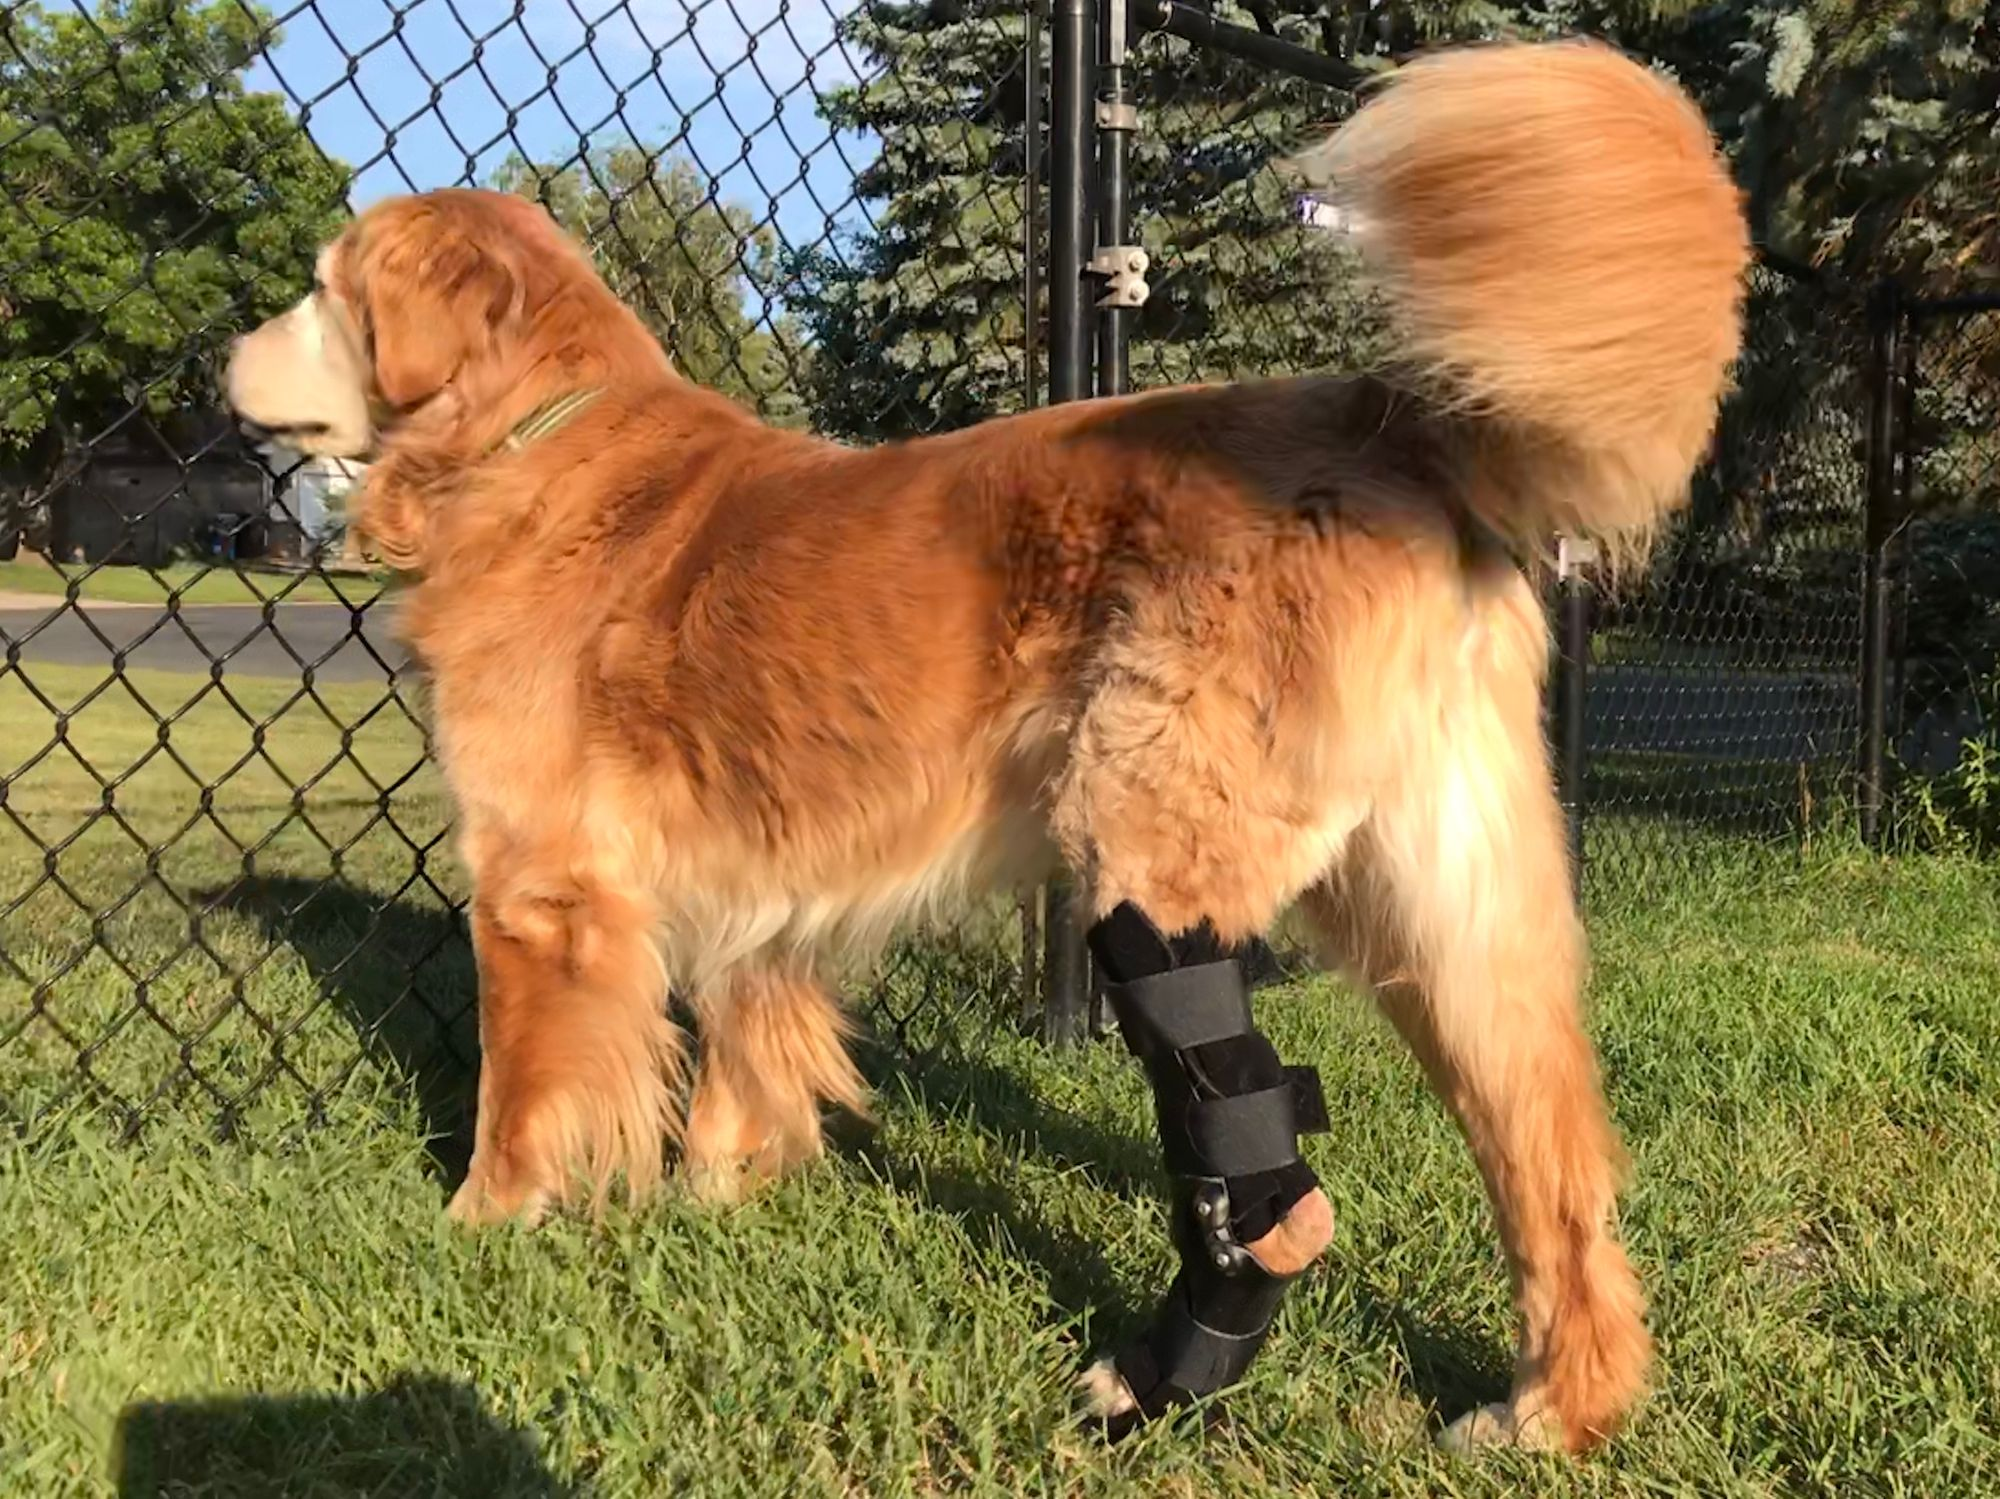 Golden Retriever looking through fence wearing an ankle brace